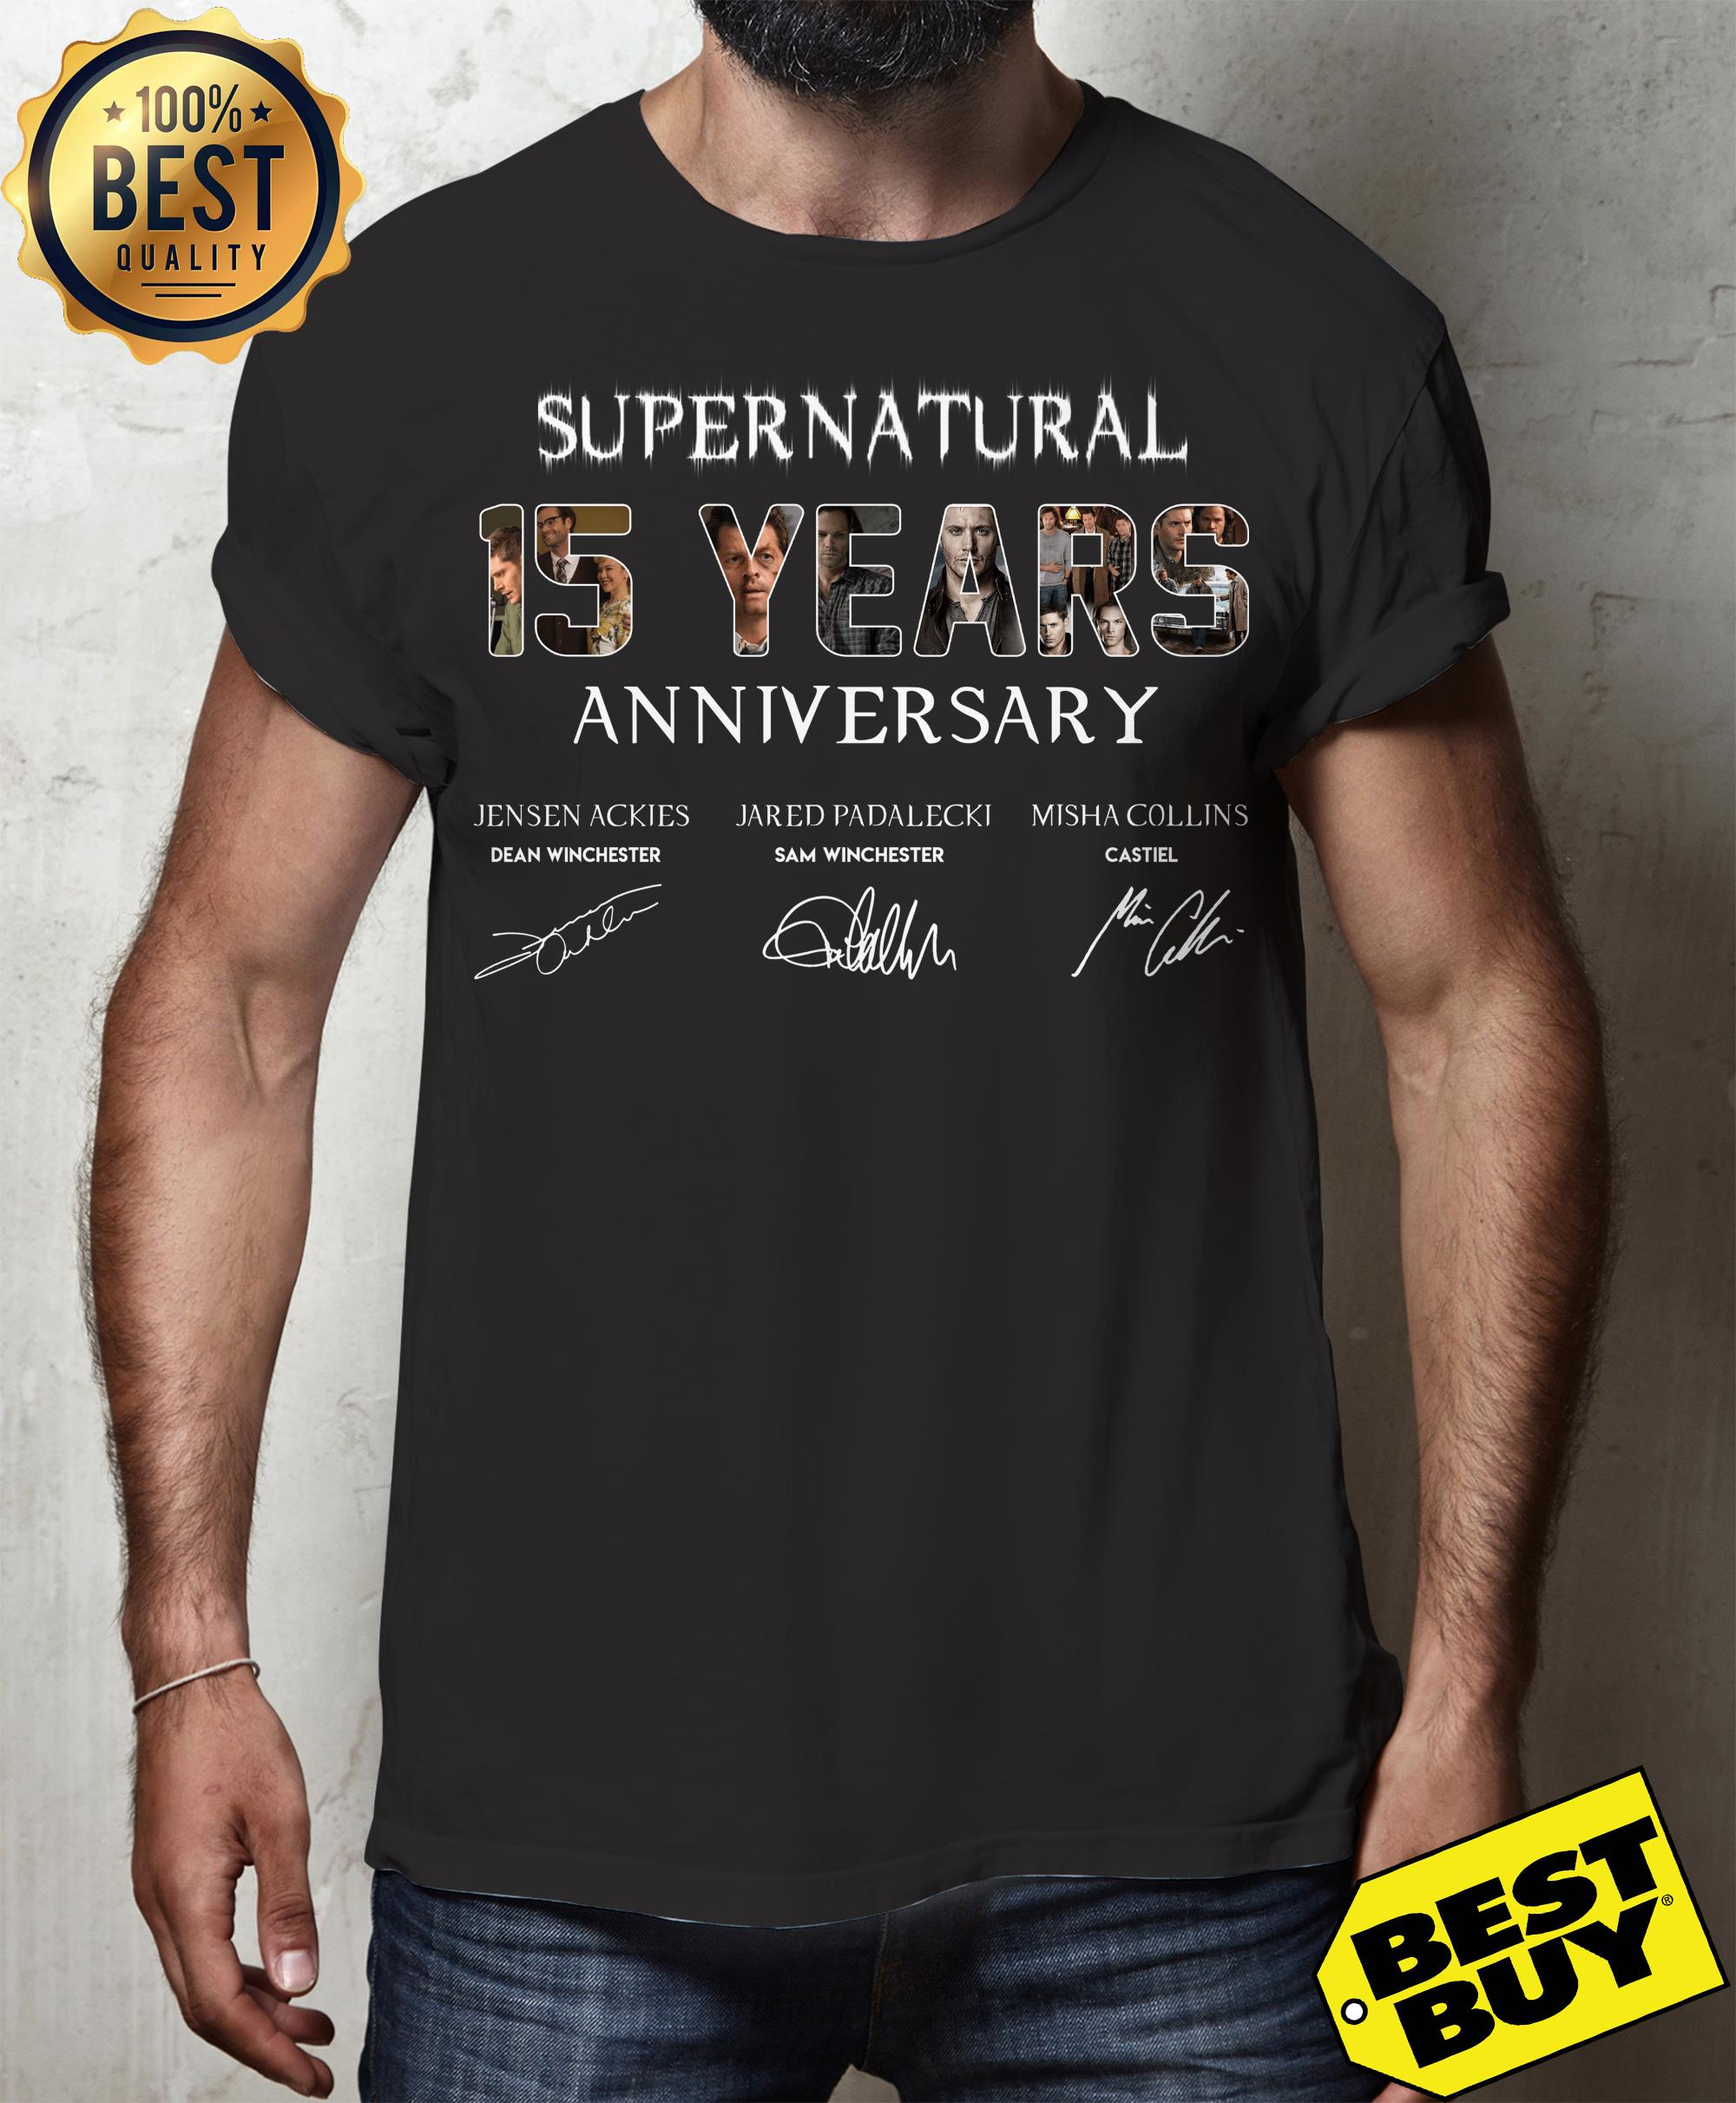 Supernatural 15 Years Anniversary All Signatures v-neck